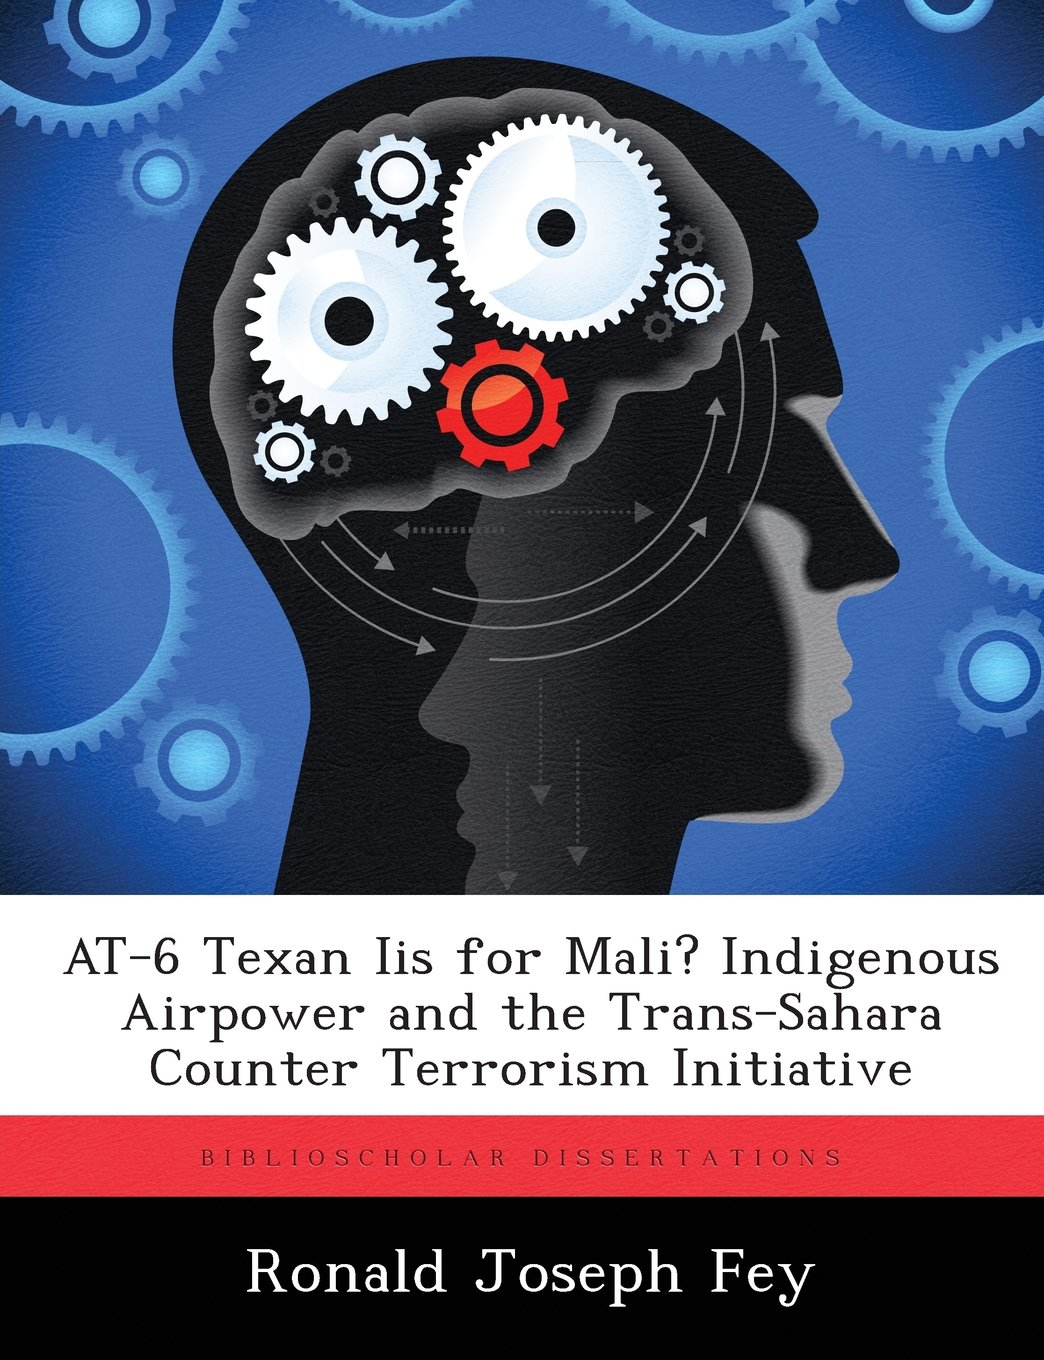 Read Online AT-6 Texan Iis for Mali? Indigenous Airpower and the Trans-Sahara Counter Terrorism Initiative ebook